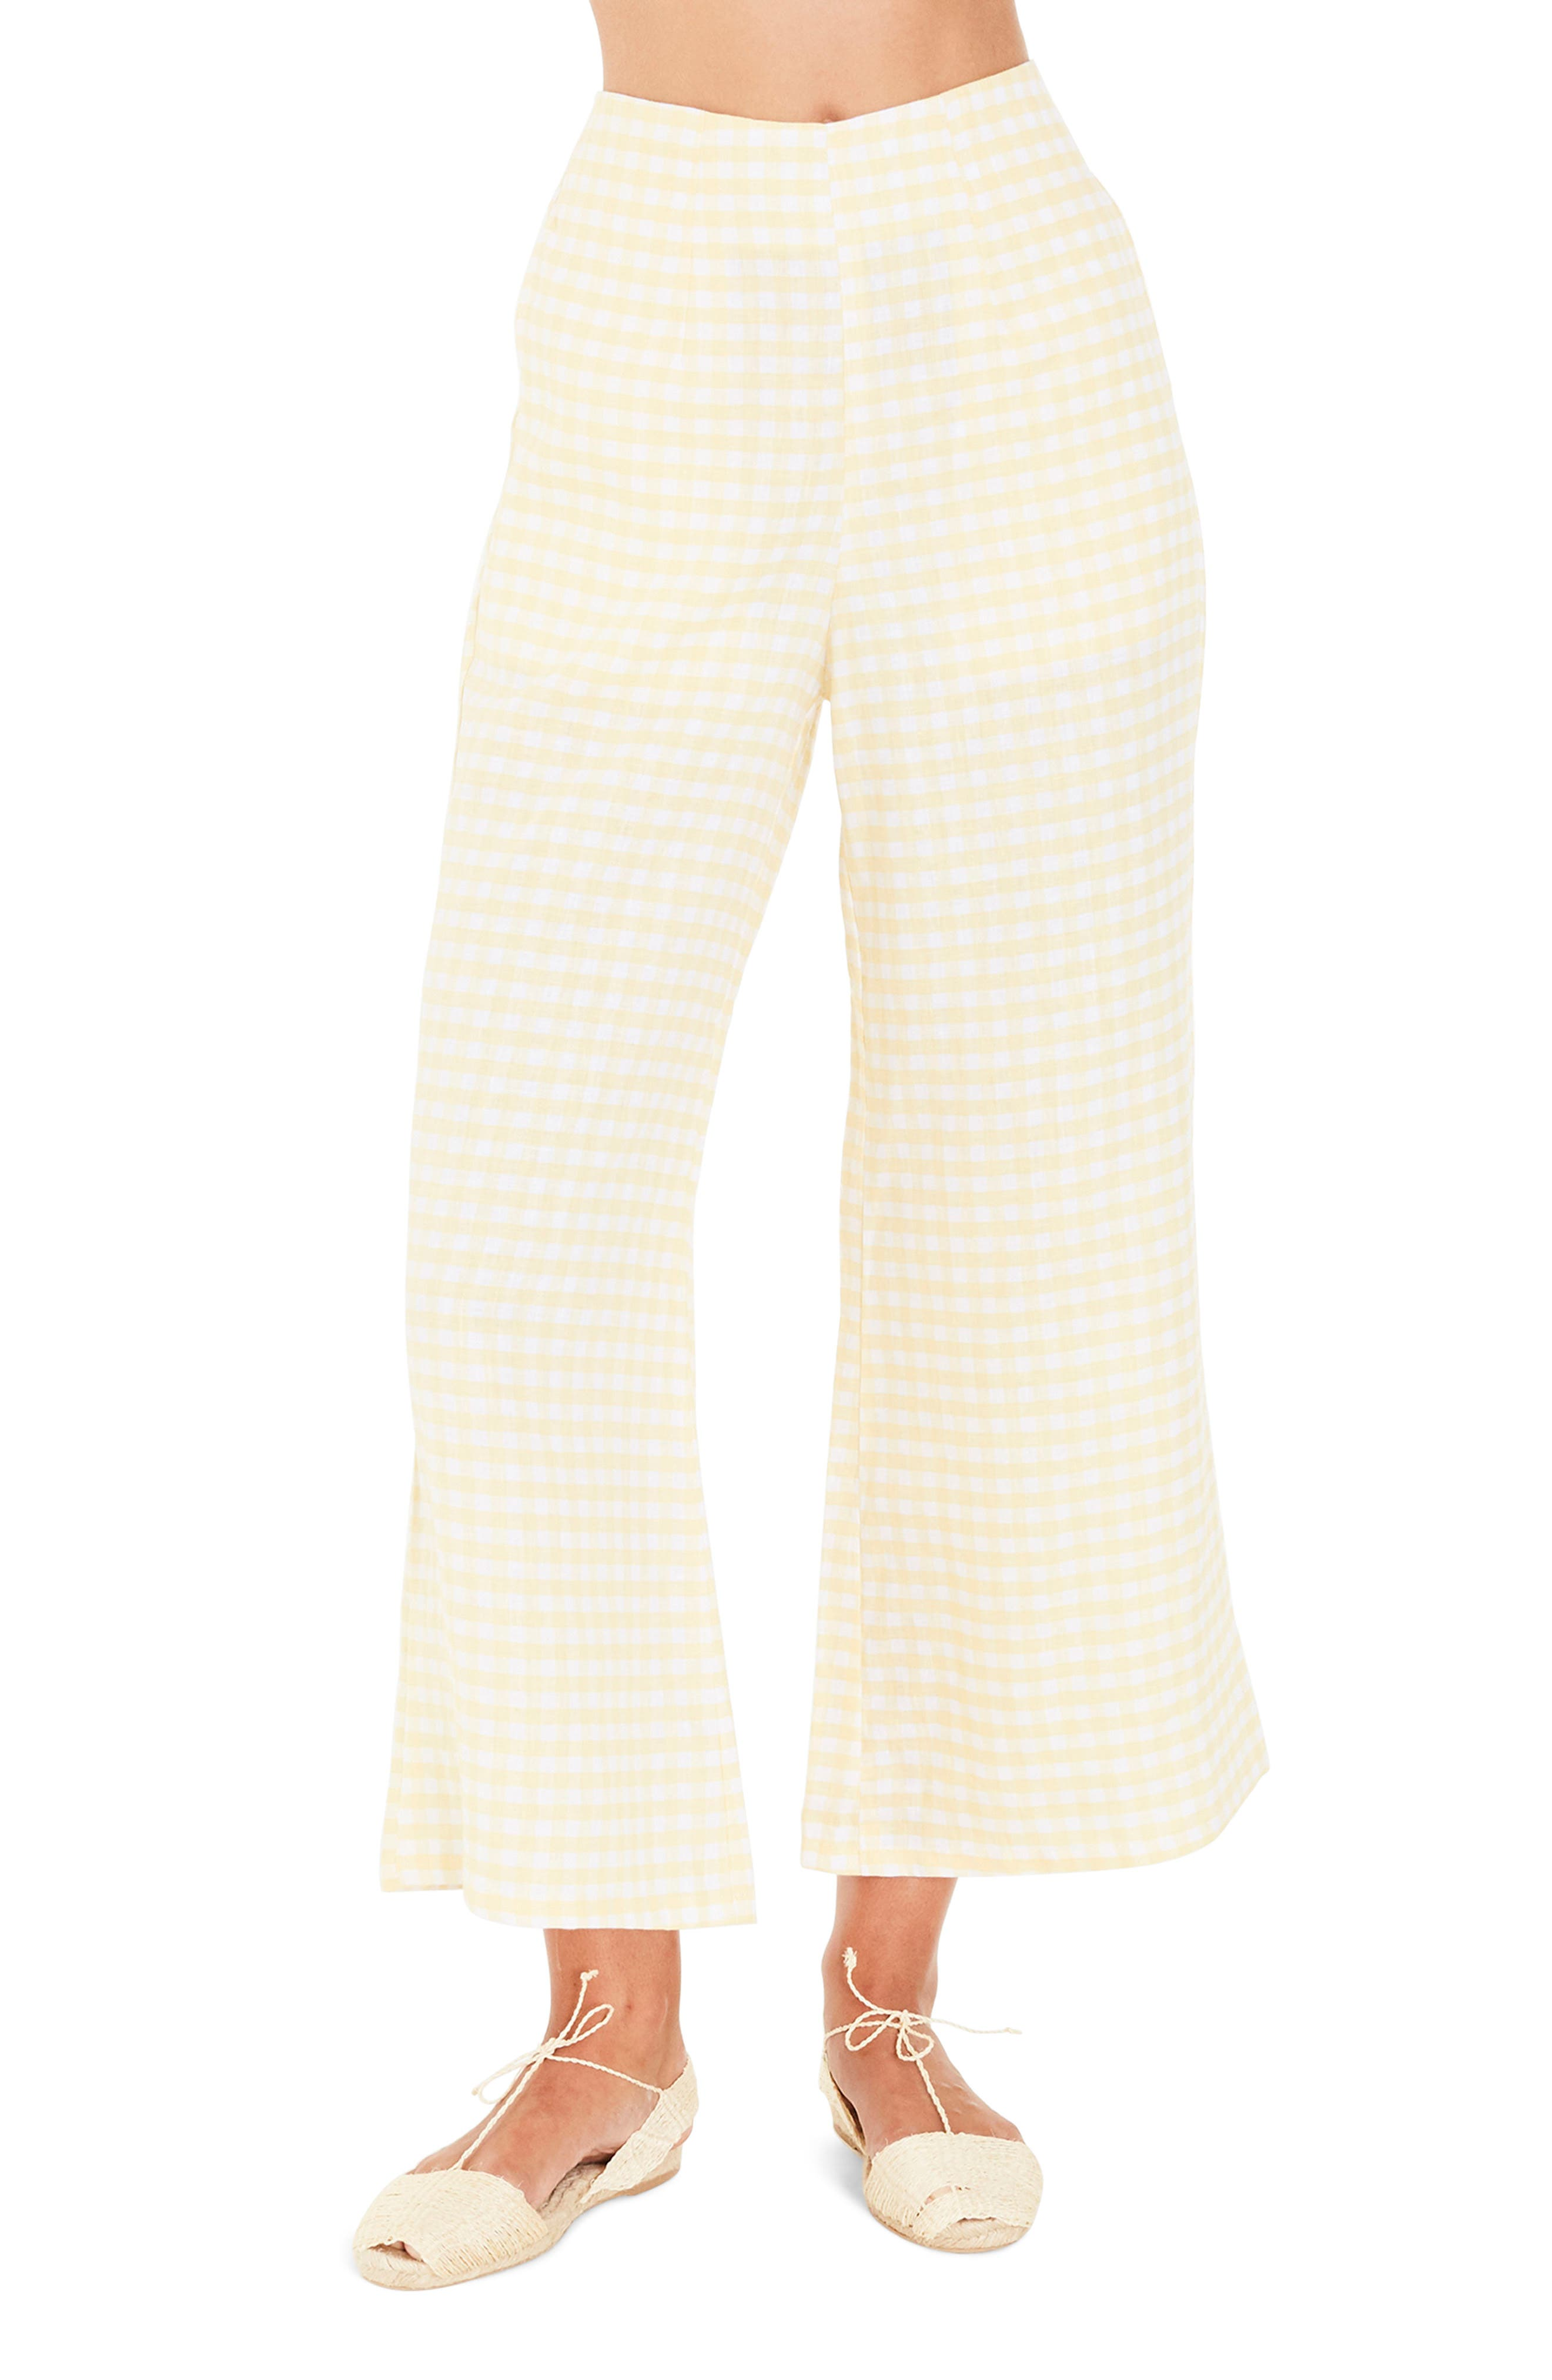 Tomas Gingham Linen Pants,                             Main thumbnail 1, color,                             Kivotos Print